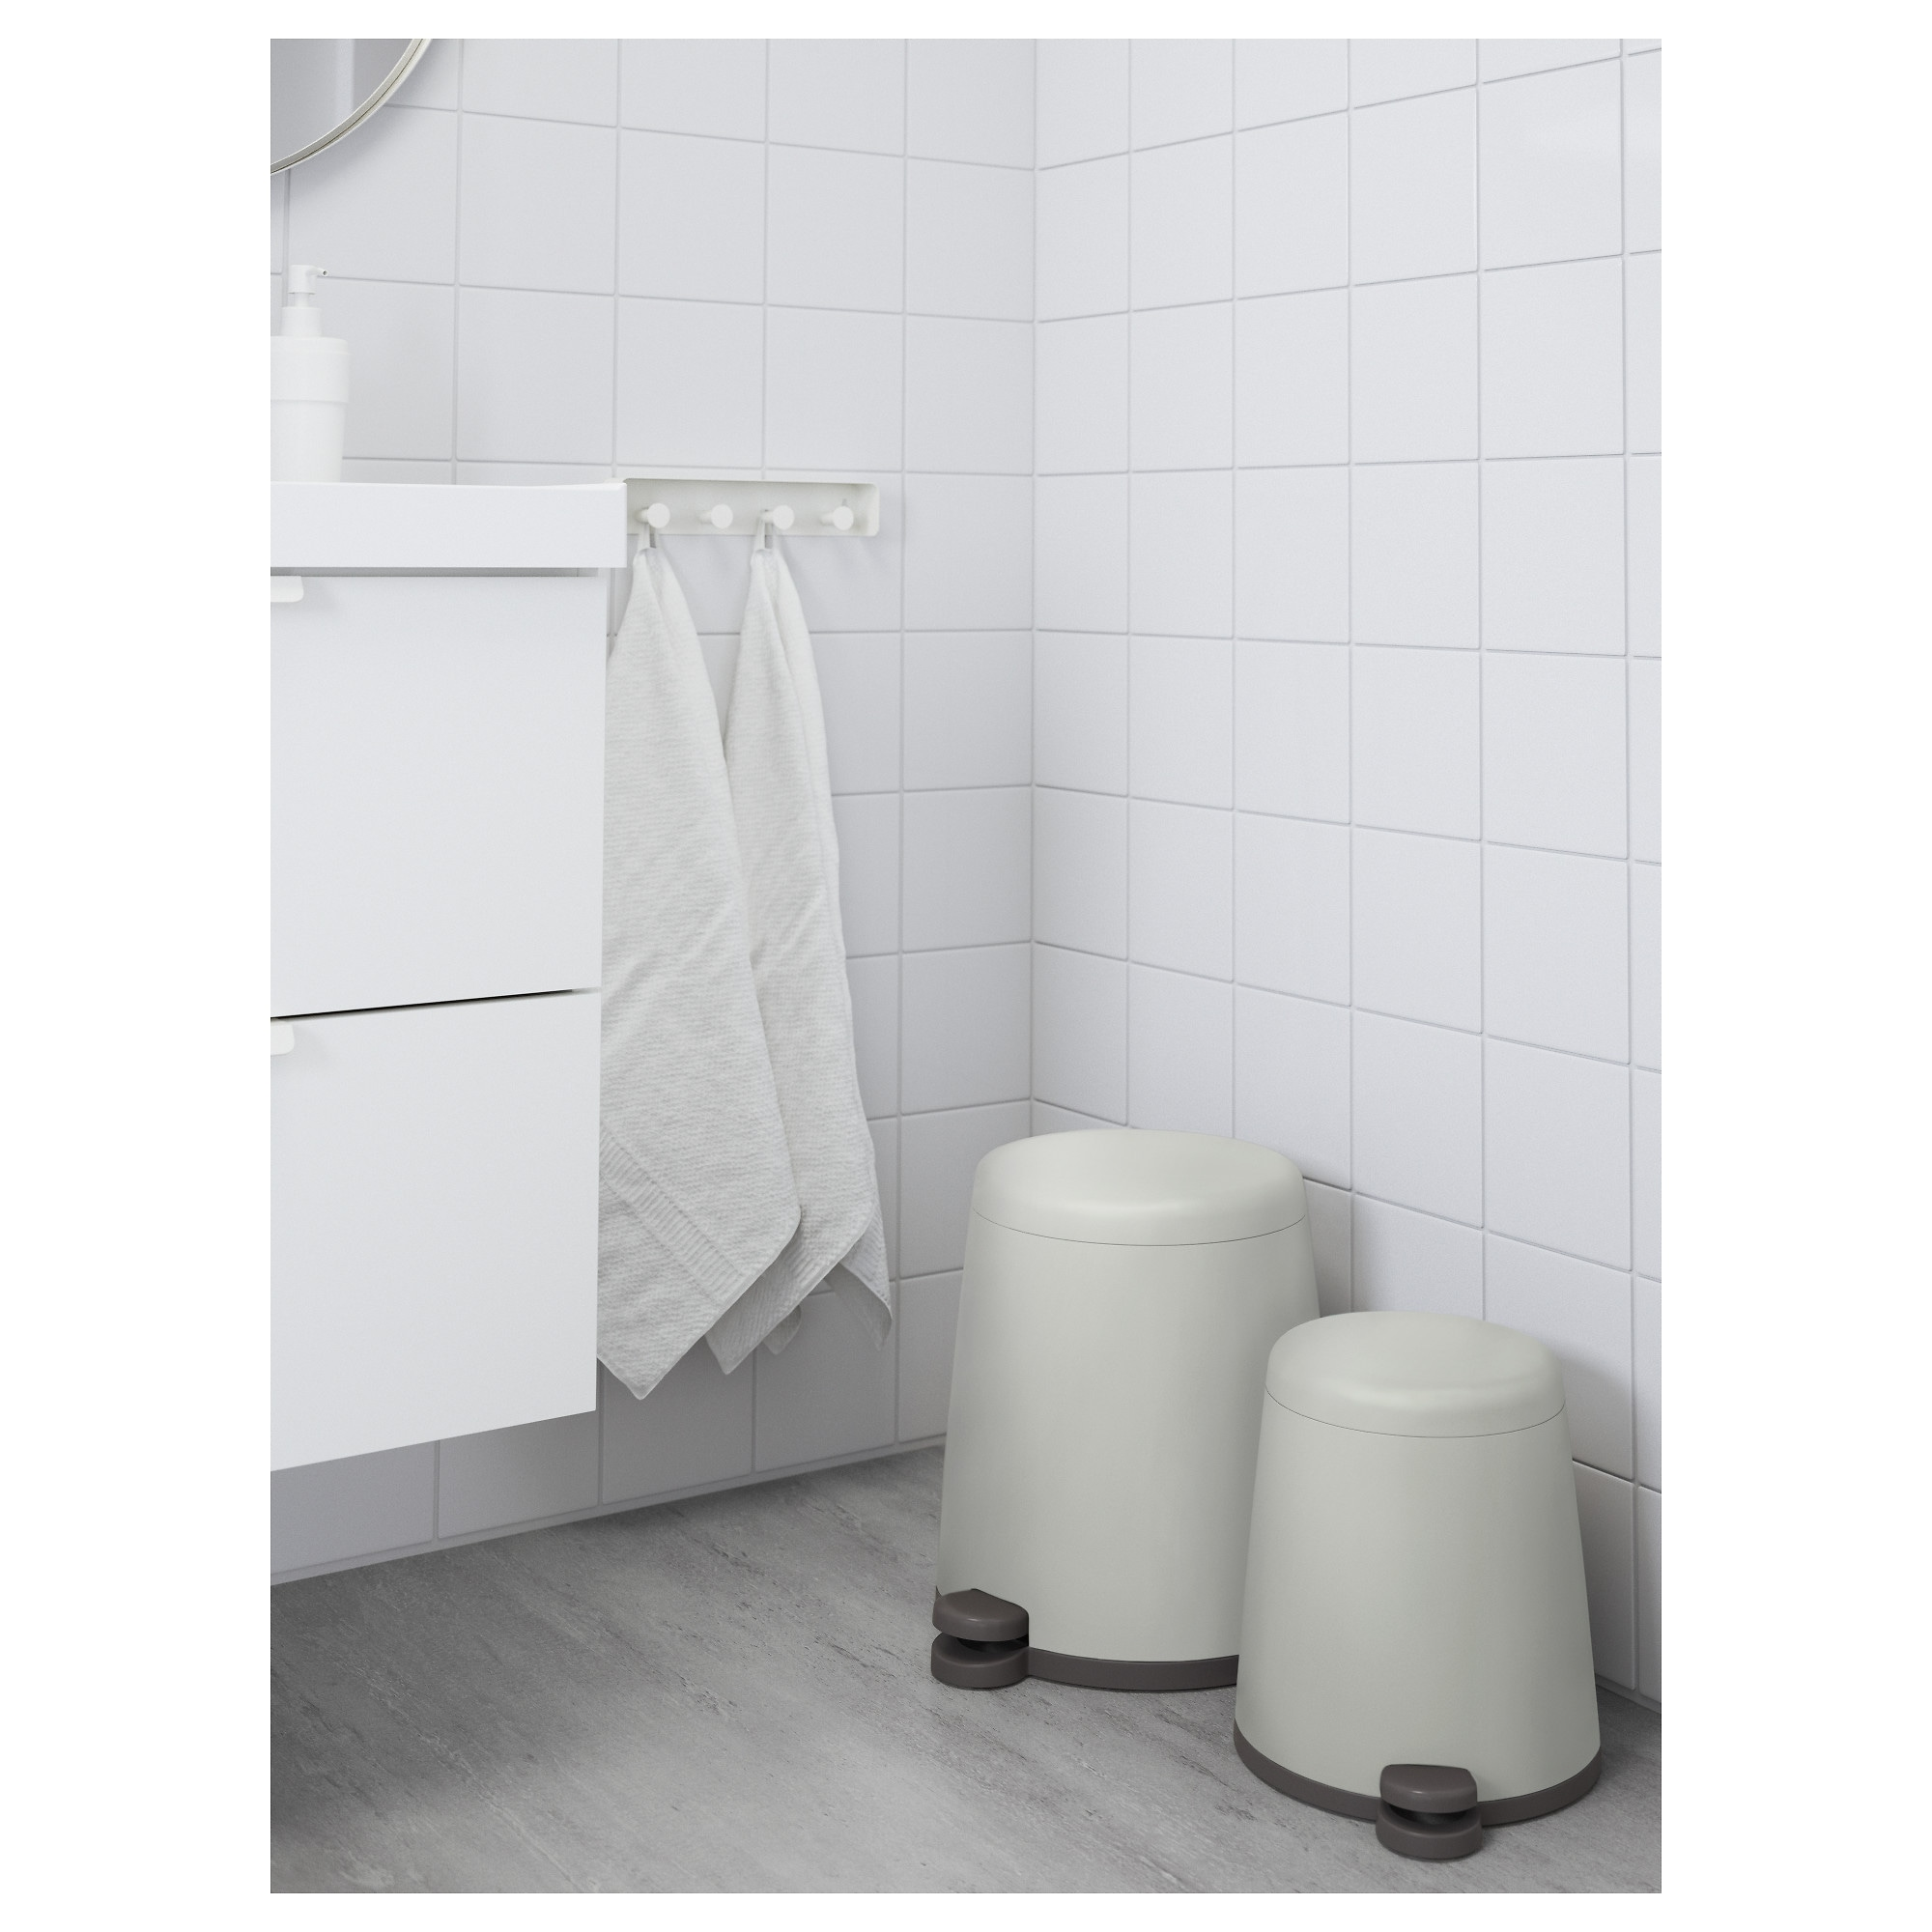 White Bathroom Bin snÄpp pedal bin - white, 1 gallon - ikea